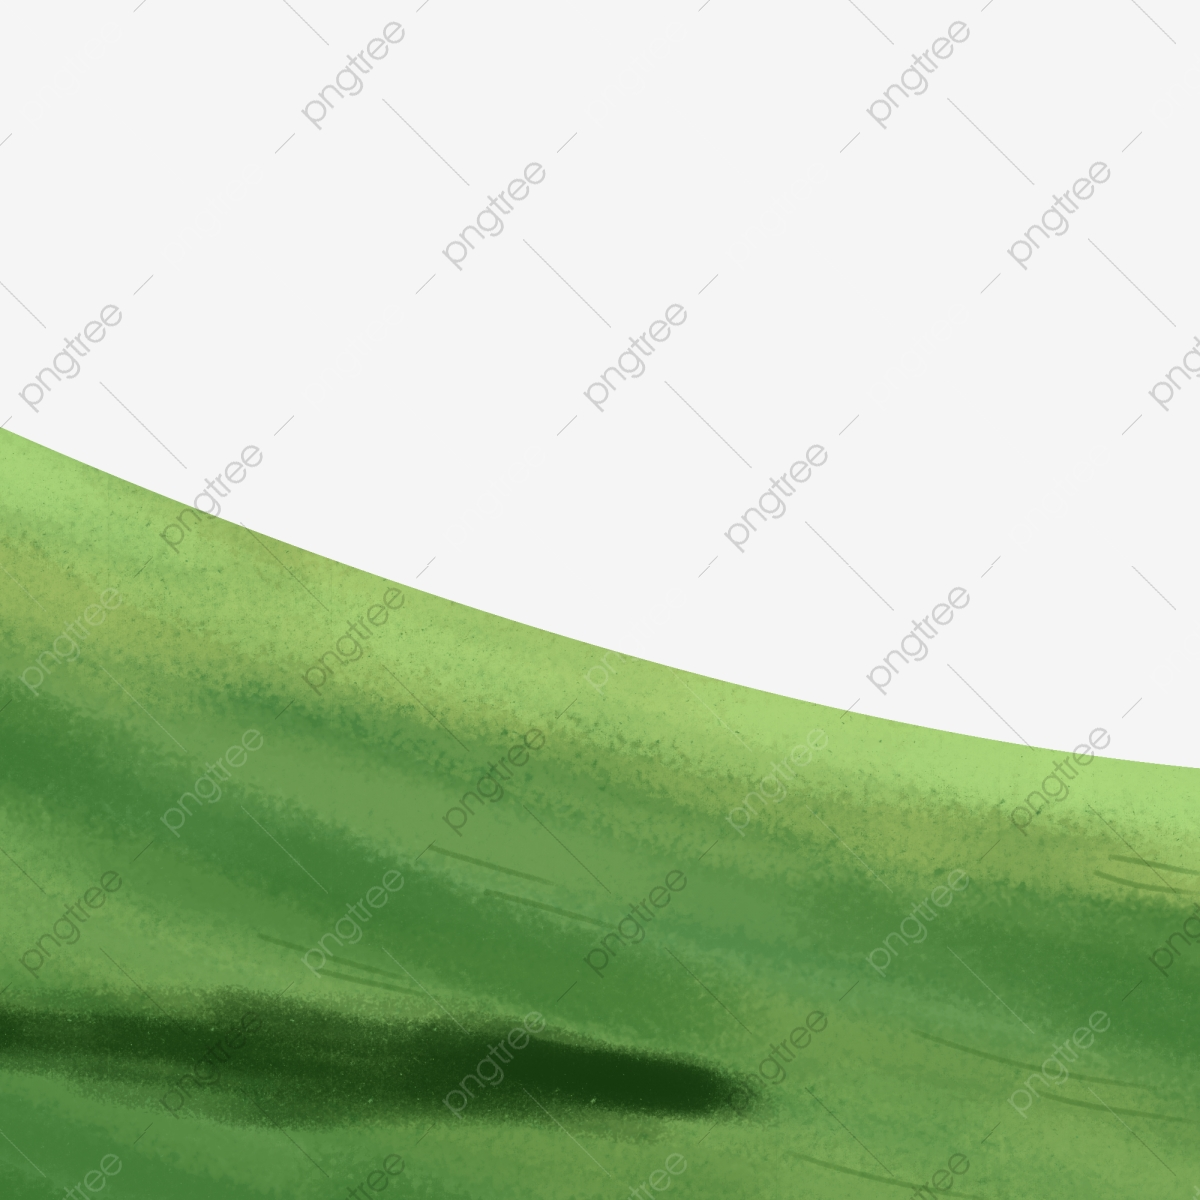 Cartoon Green Grassland Download Grassland Green Meadow Green Grass Png Transparent Clipart Image And Psd File For Free Download